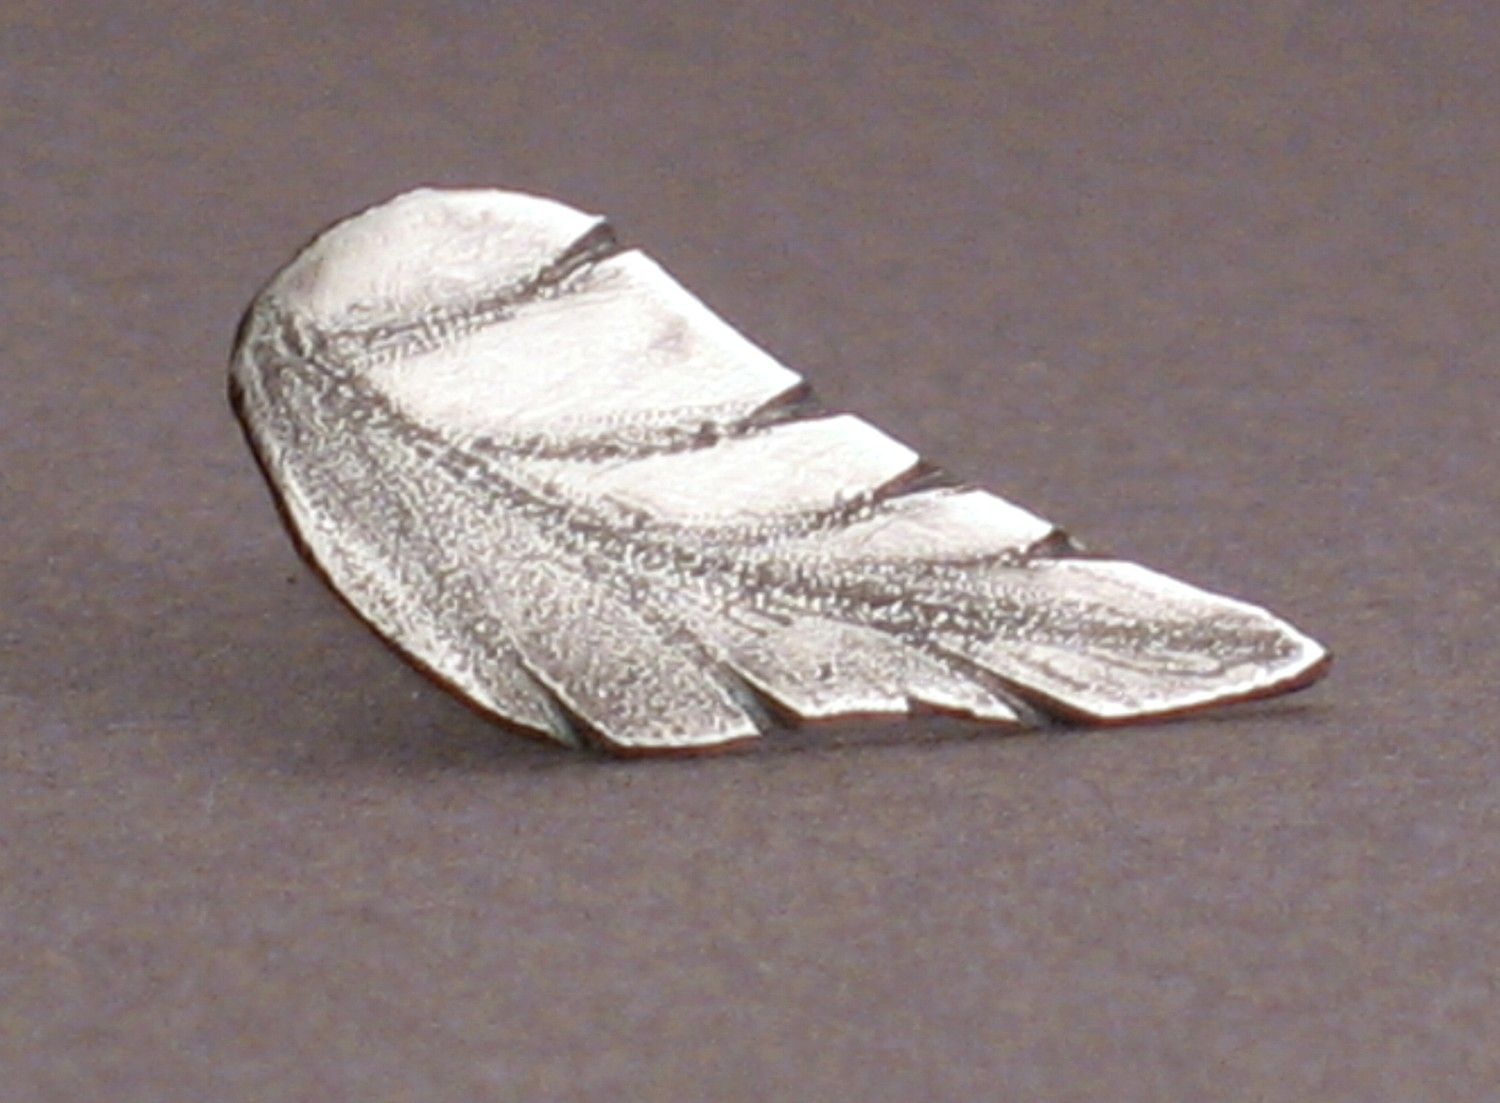 Forest Leaf - Tie Pin or Lapel Pin in Sterling Silver For Men and Women. $32.00, via Etsy.